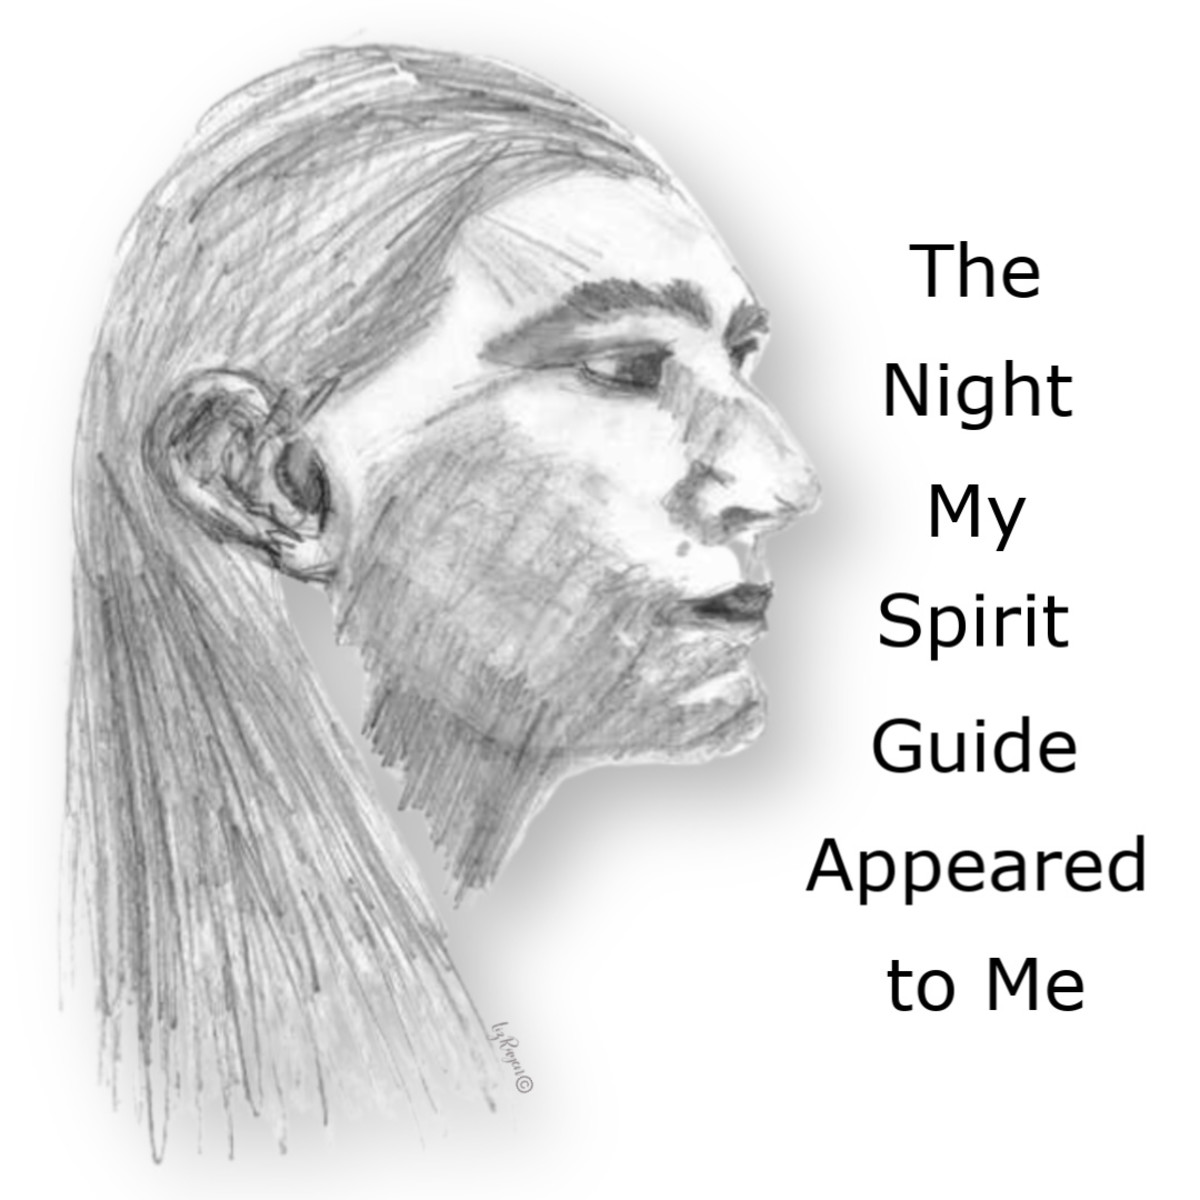 the-night-my-spirit-guide-appeared-to-me